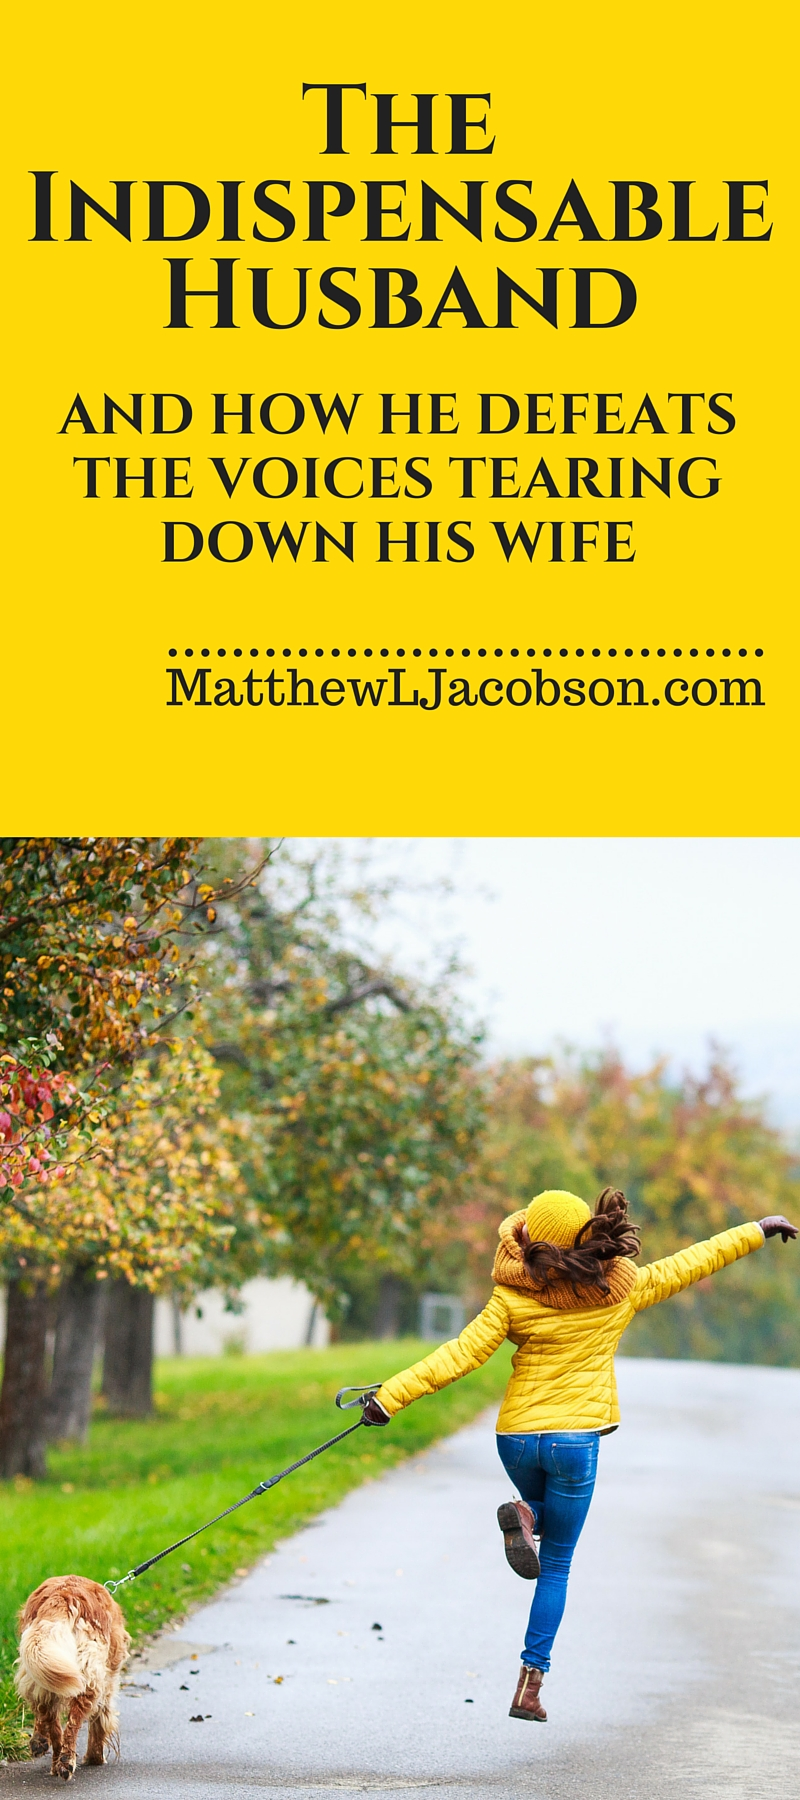 The Indispensable Husband . . . and how he defeats the Voices Tearing Down His Wife {with free printable} via @faithful_man